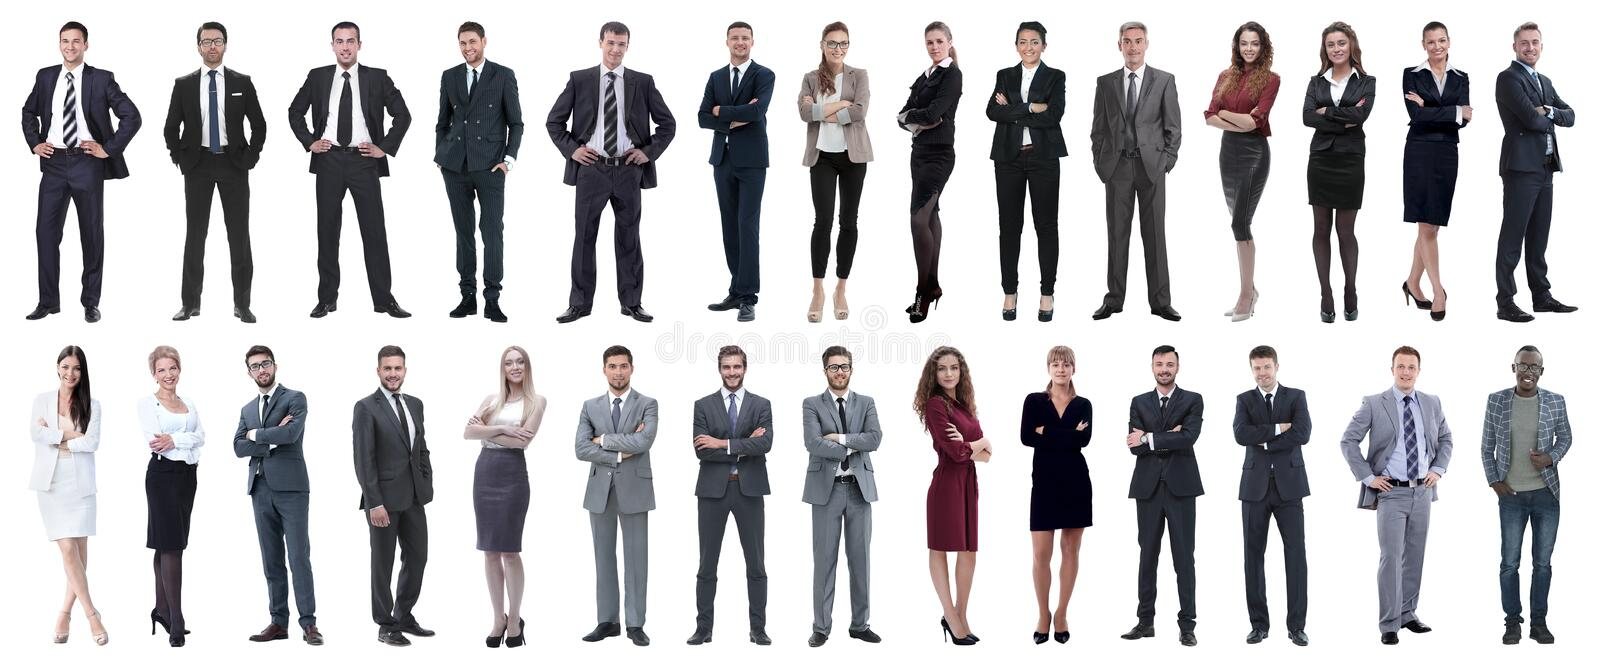 Successful business people isolated on white background. Photo collage royalty free stock photography